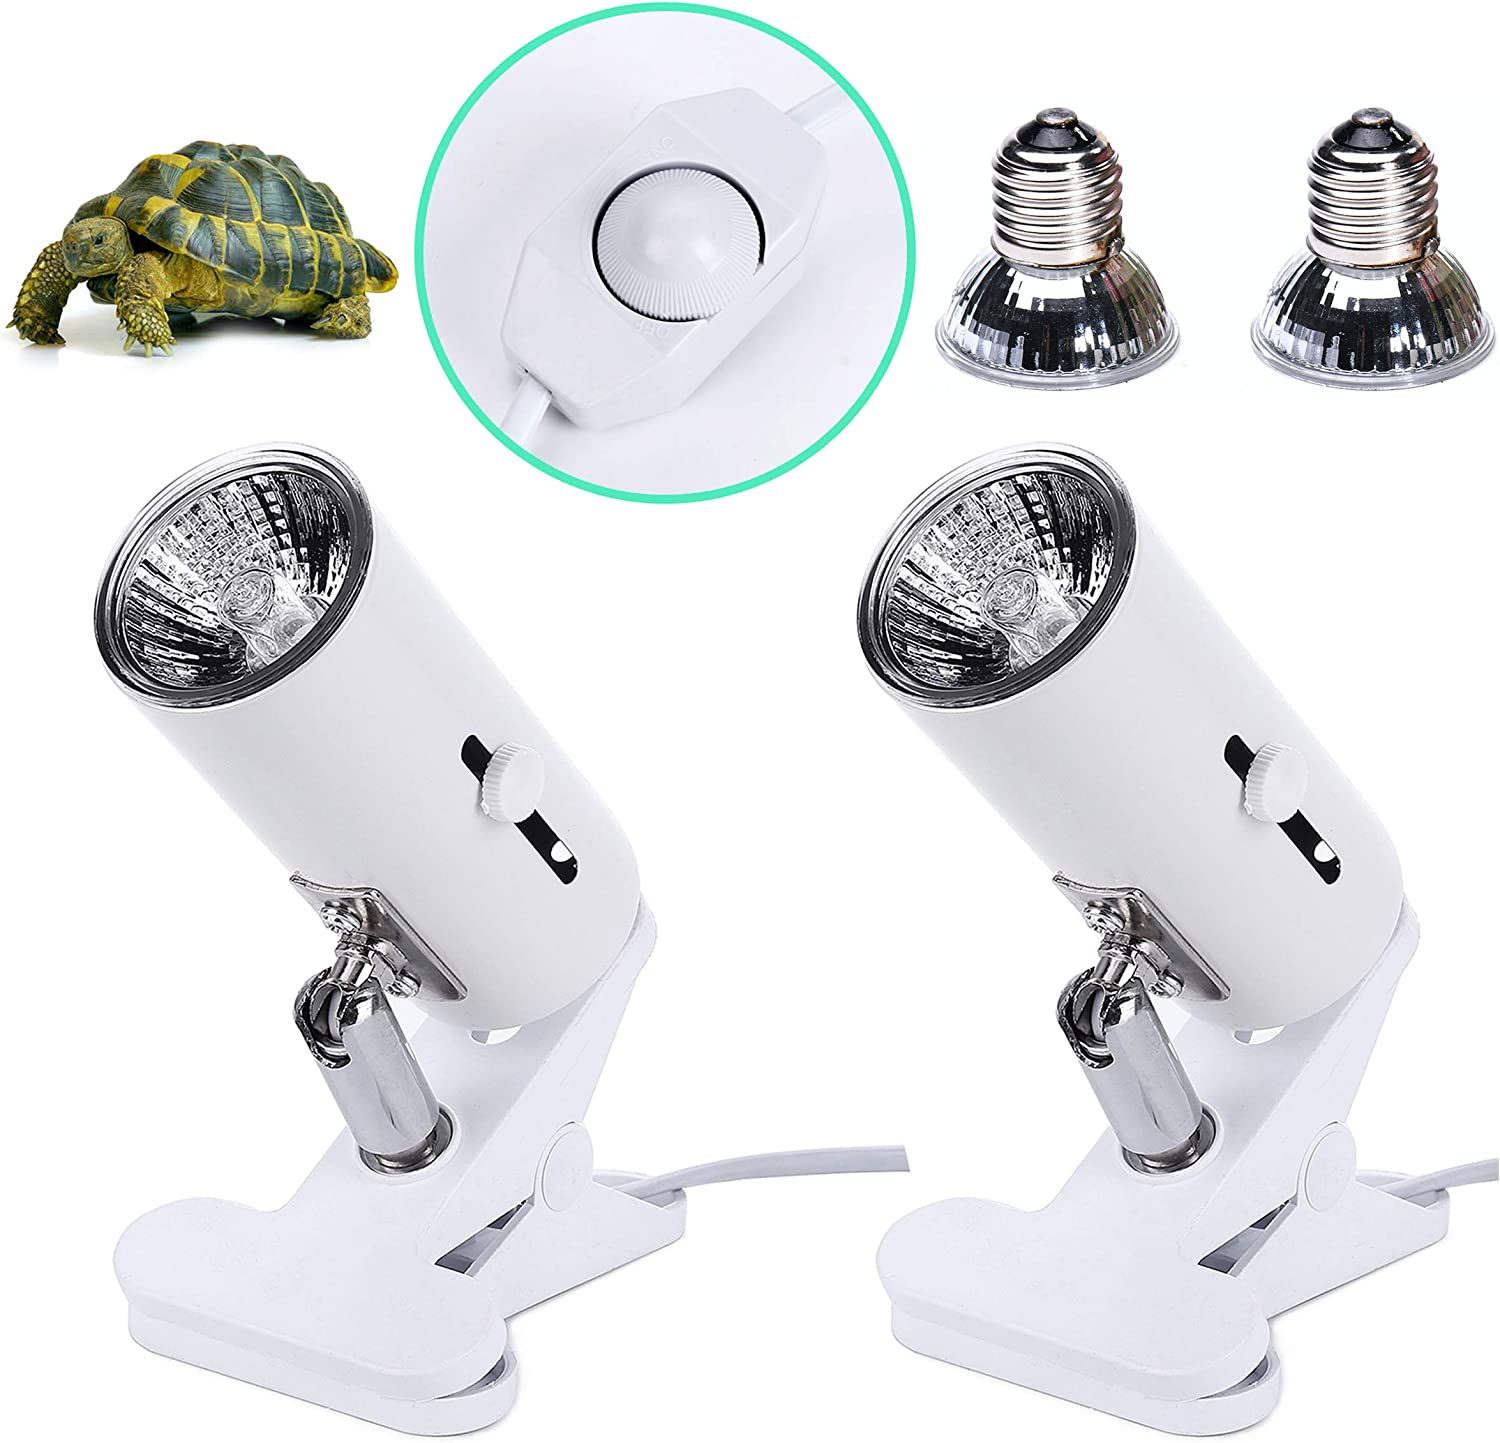 Adjustable and Rotates 360/° Terrariums Cages Works with Various Light Bulbs CalPalmy 2-Pack 50W UVA UVB Dimmable Switch Lamp Lights with Bulbs  Heat and Light for Reptiles and Amphibian Tanks